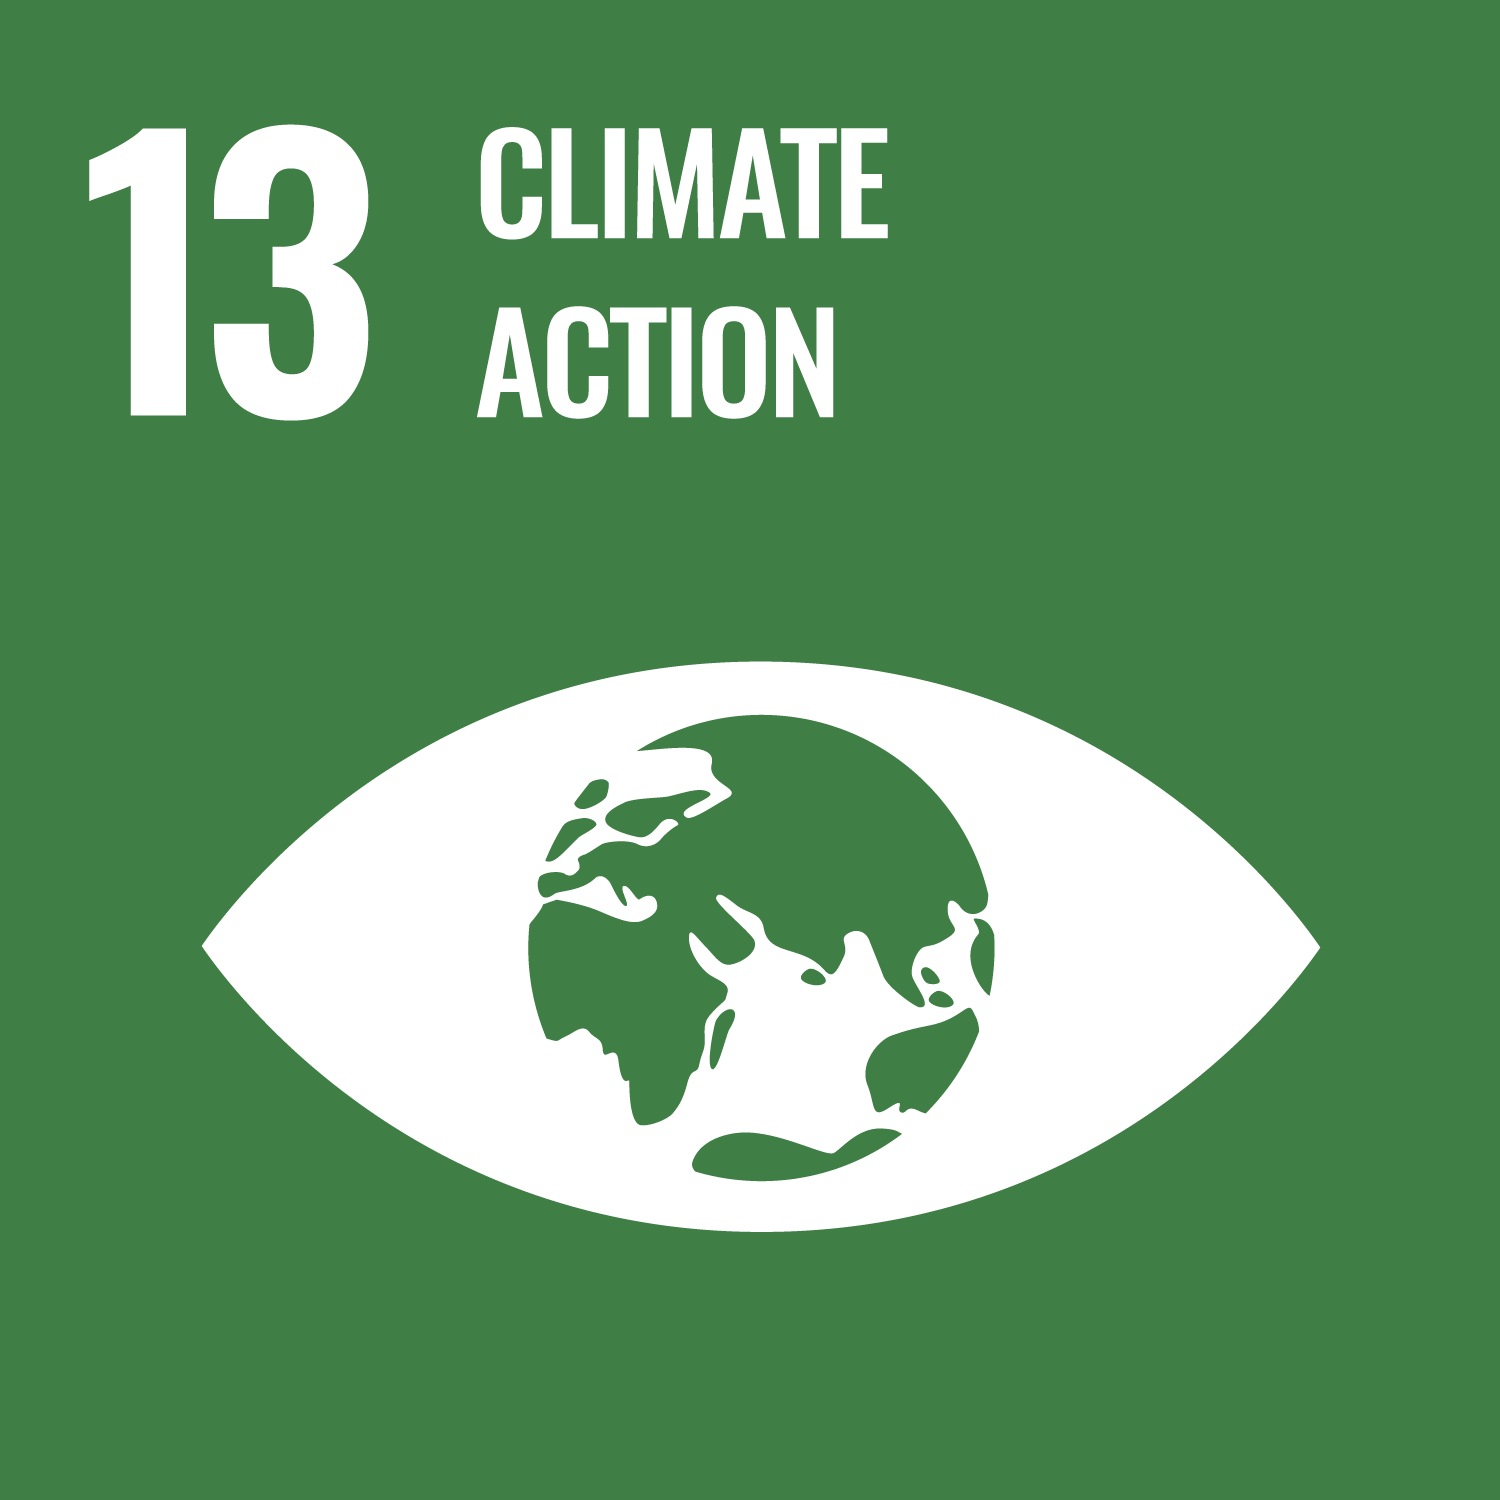 Sustainable Development Goal - Climate Action